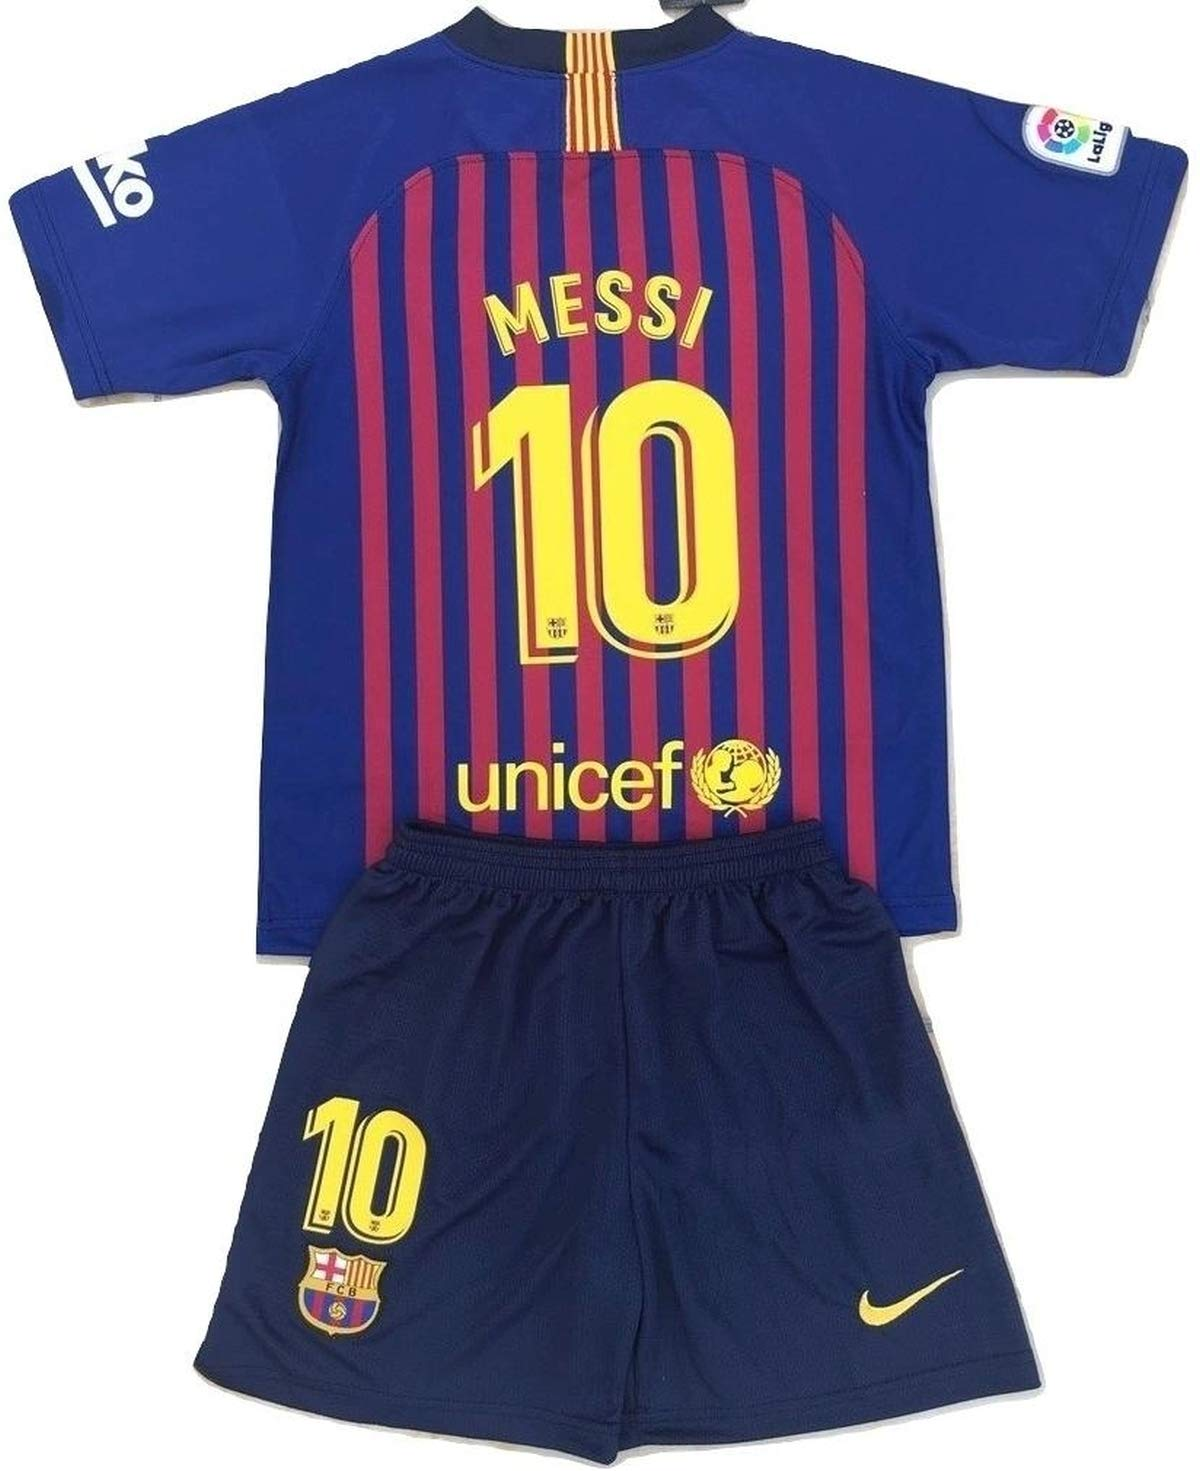 Messi #10 FC Barcelona 2018-2019 Youths/Kids Home Soccer Jersey & Shorts (9-10 Years Old) by MTG-Jersey (Image #1)